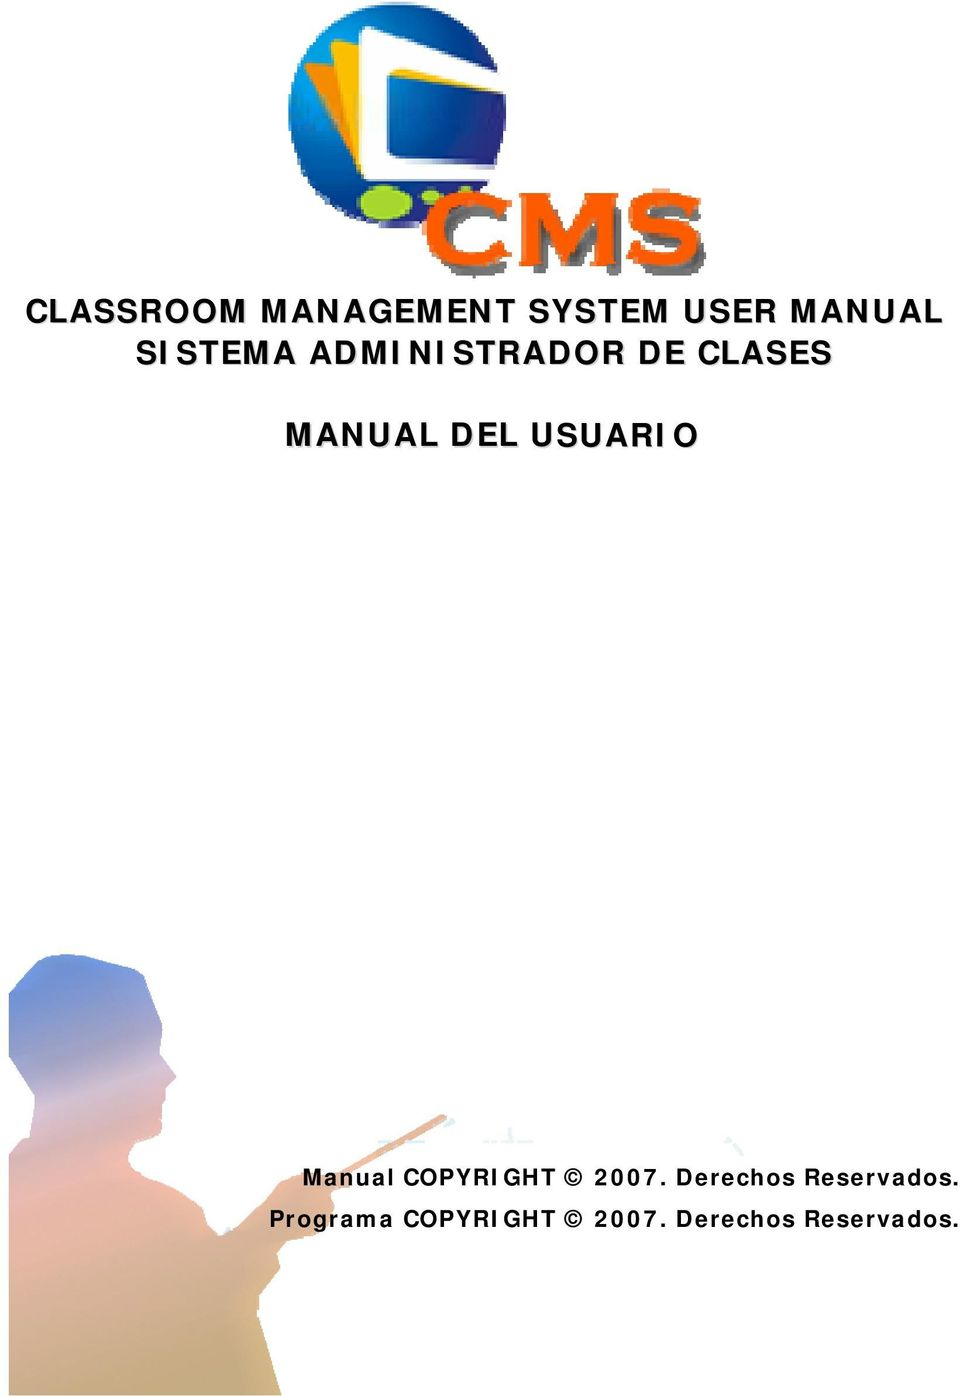 USUARIO Manual COPYRIGHT 2007.